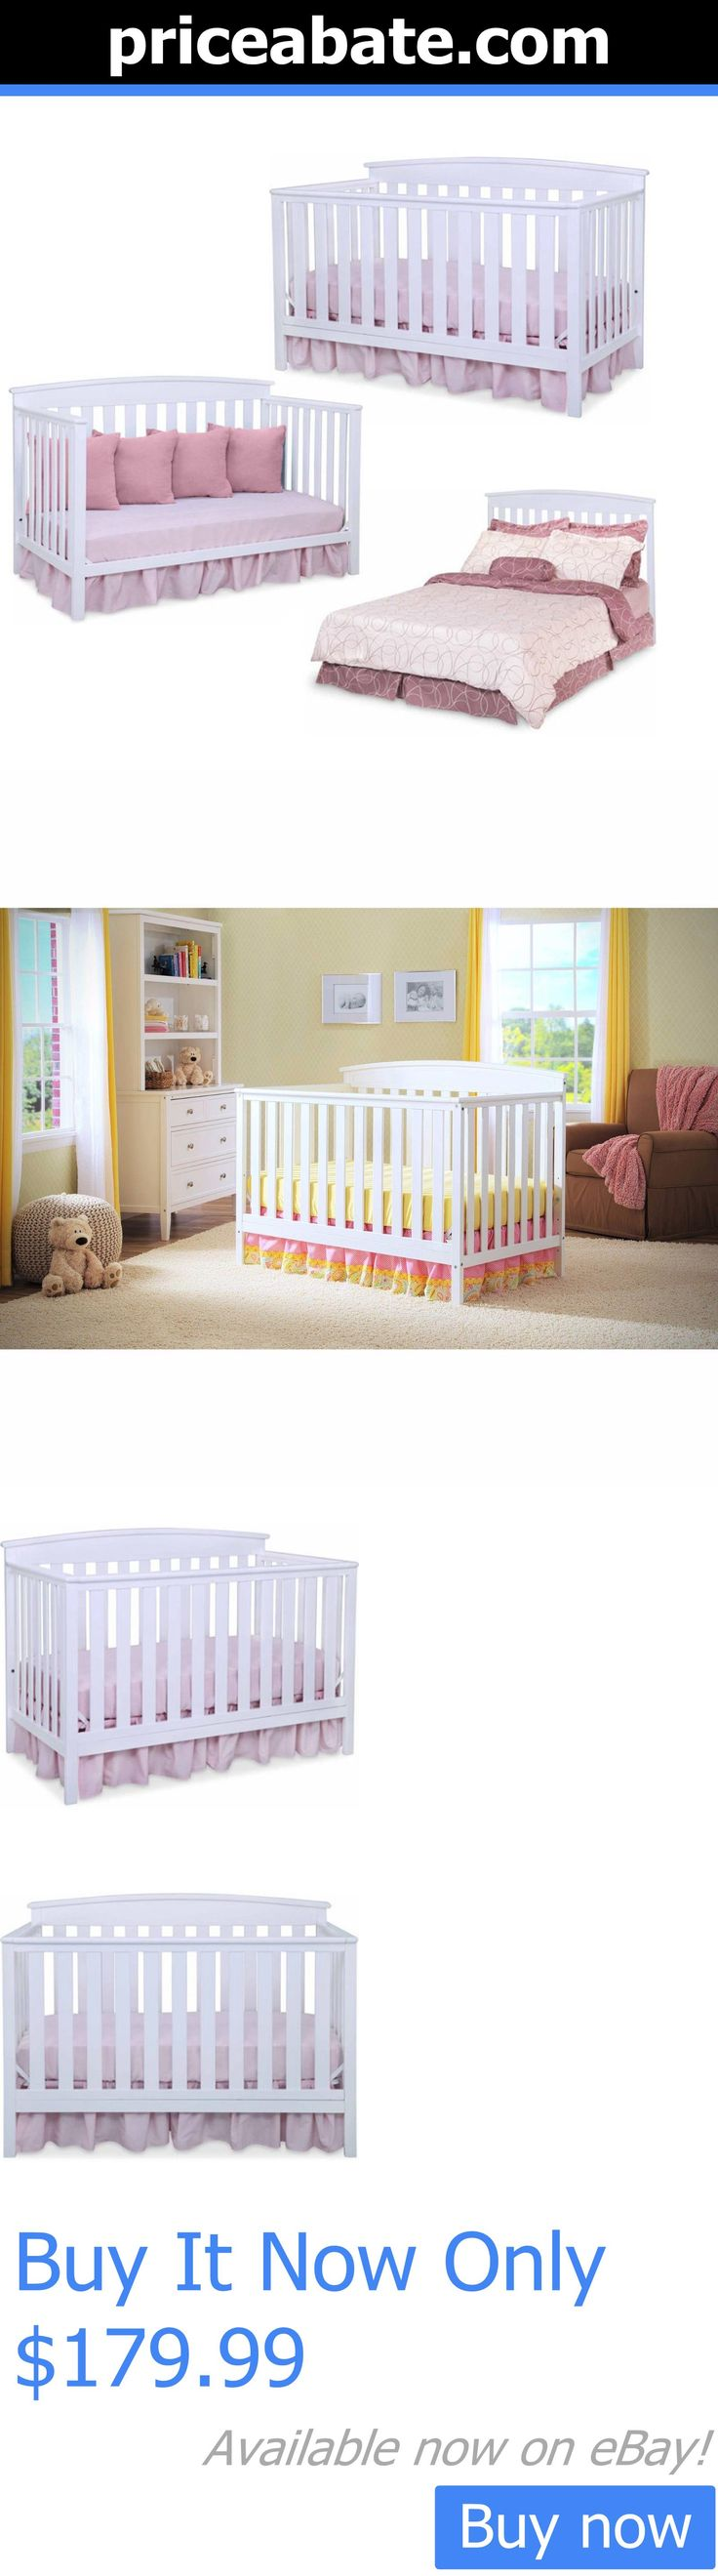 Amish crib for sale - Best 25 Convertible Baby Cribs Ideas On Pinterest Baby Furniture Convertible Crib And Grey Childrens Furniture